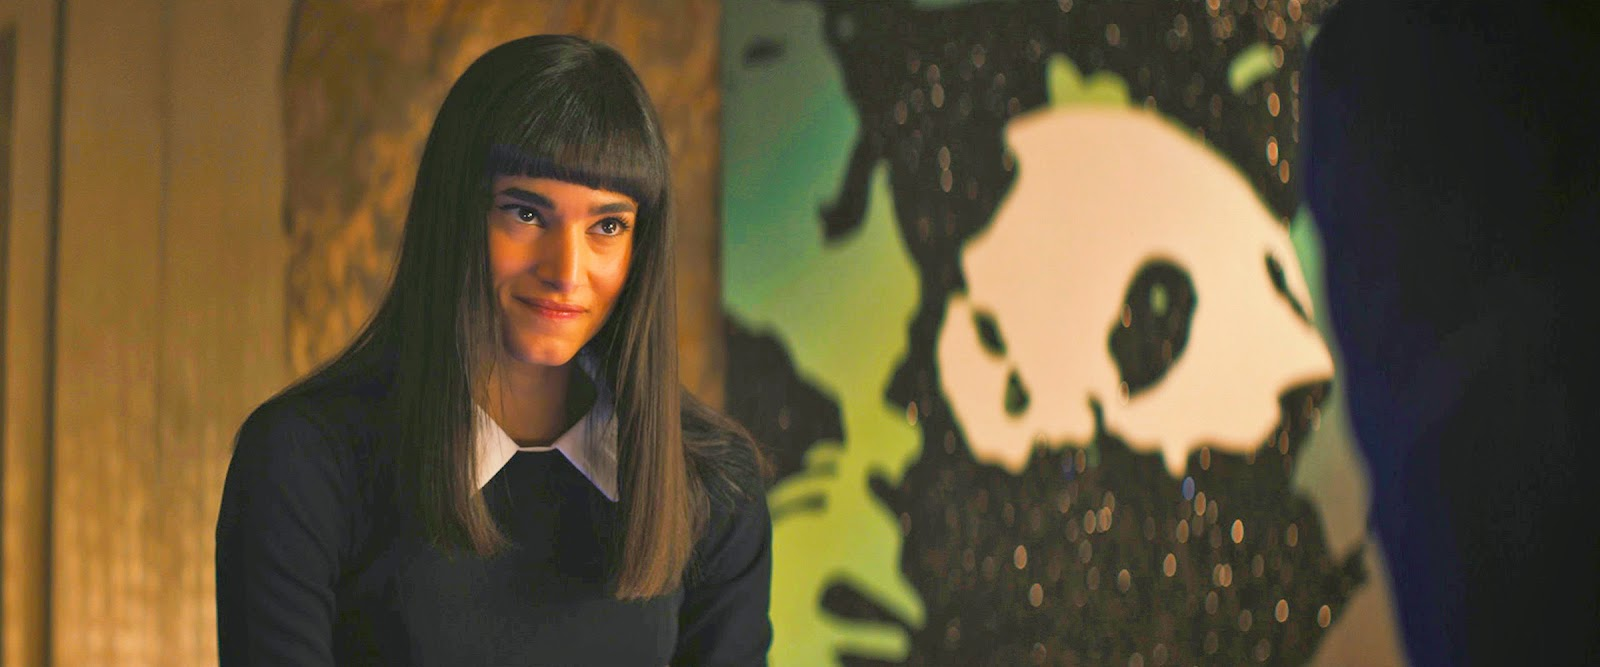 Sofia Boutella in Kingsman: The Secret Service